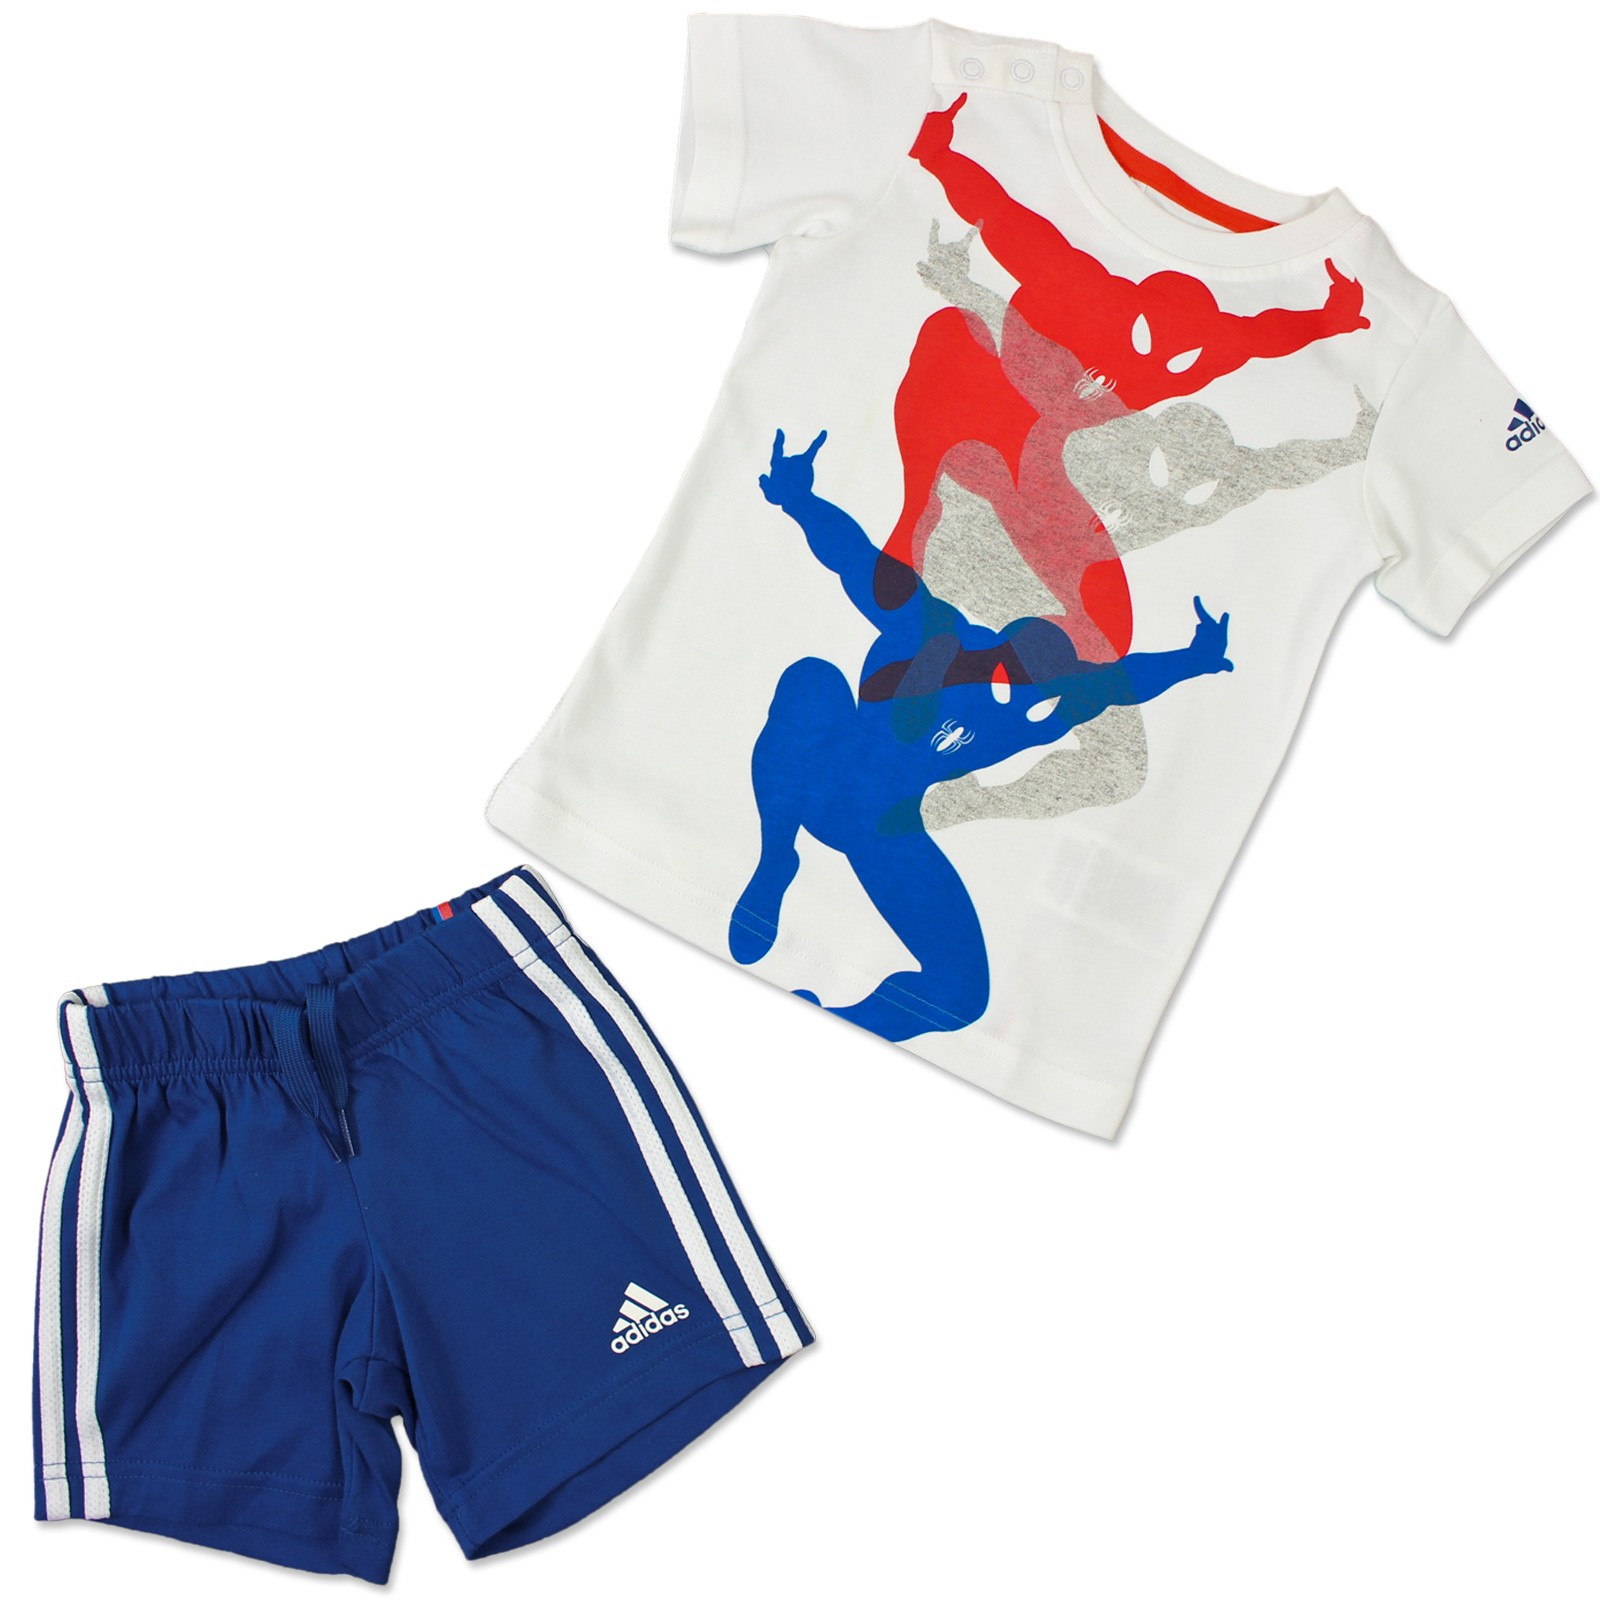 new release nice shoes store ADIDAS + MARVEL BABY KINDER SOMMER SET ANZUG SPIDERMAN HOSE + T-SHIRT SPINNE